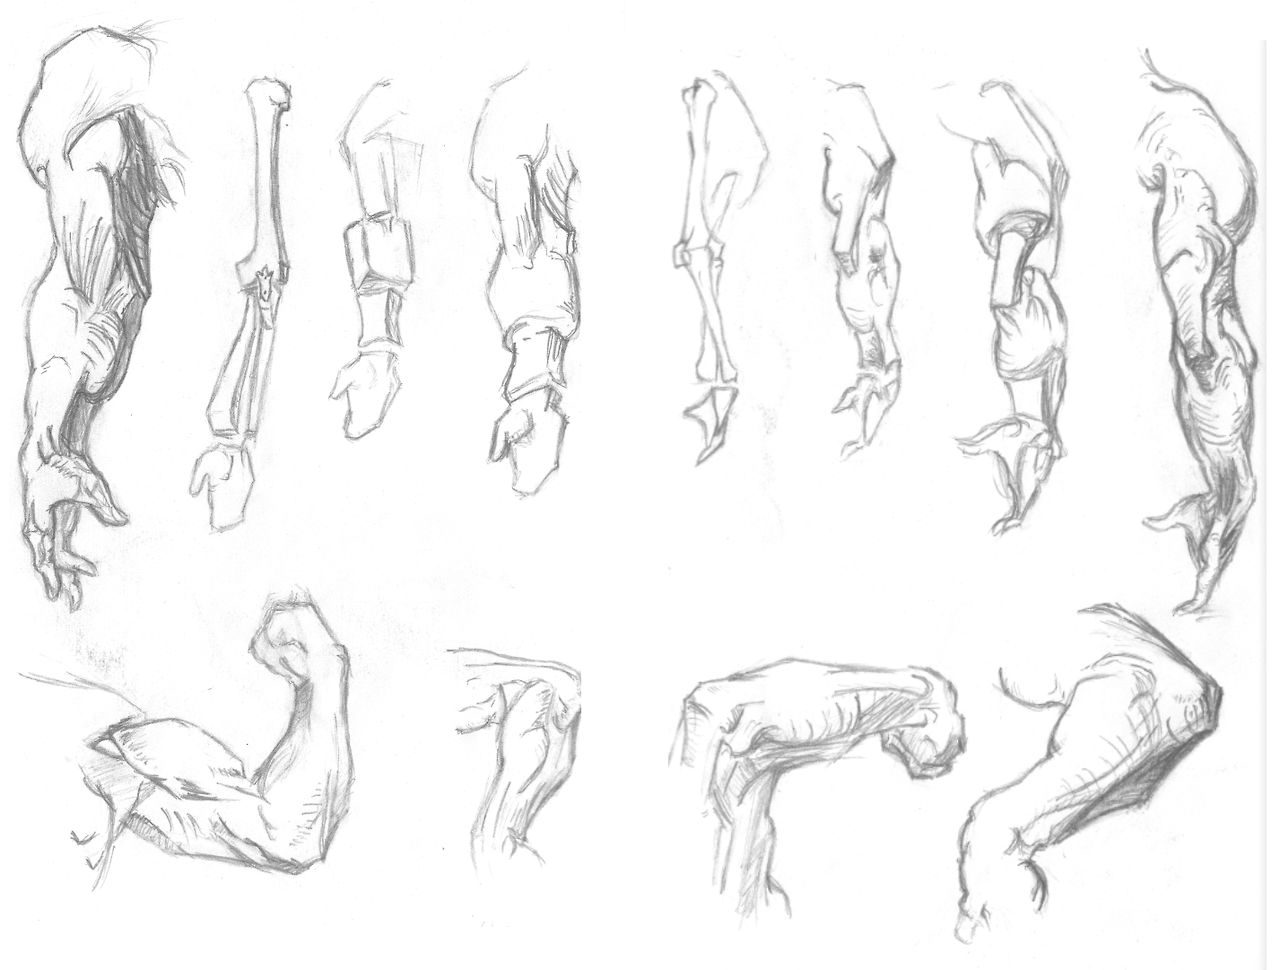 Biceps Drawing at GetDrawings.com | Free for personal use Biceps ...